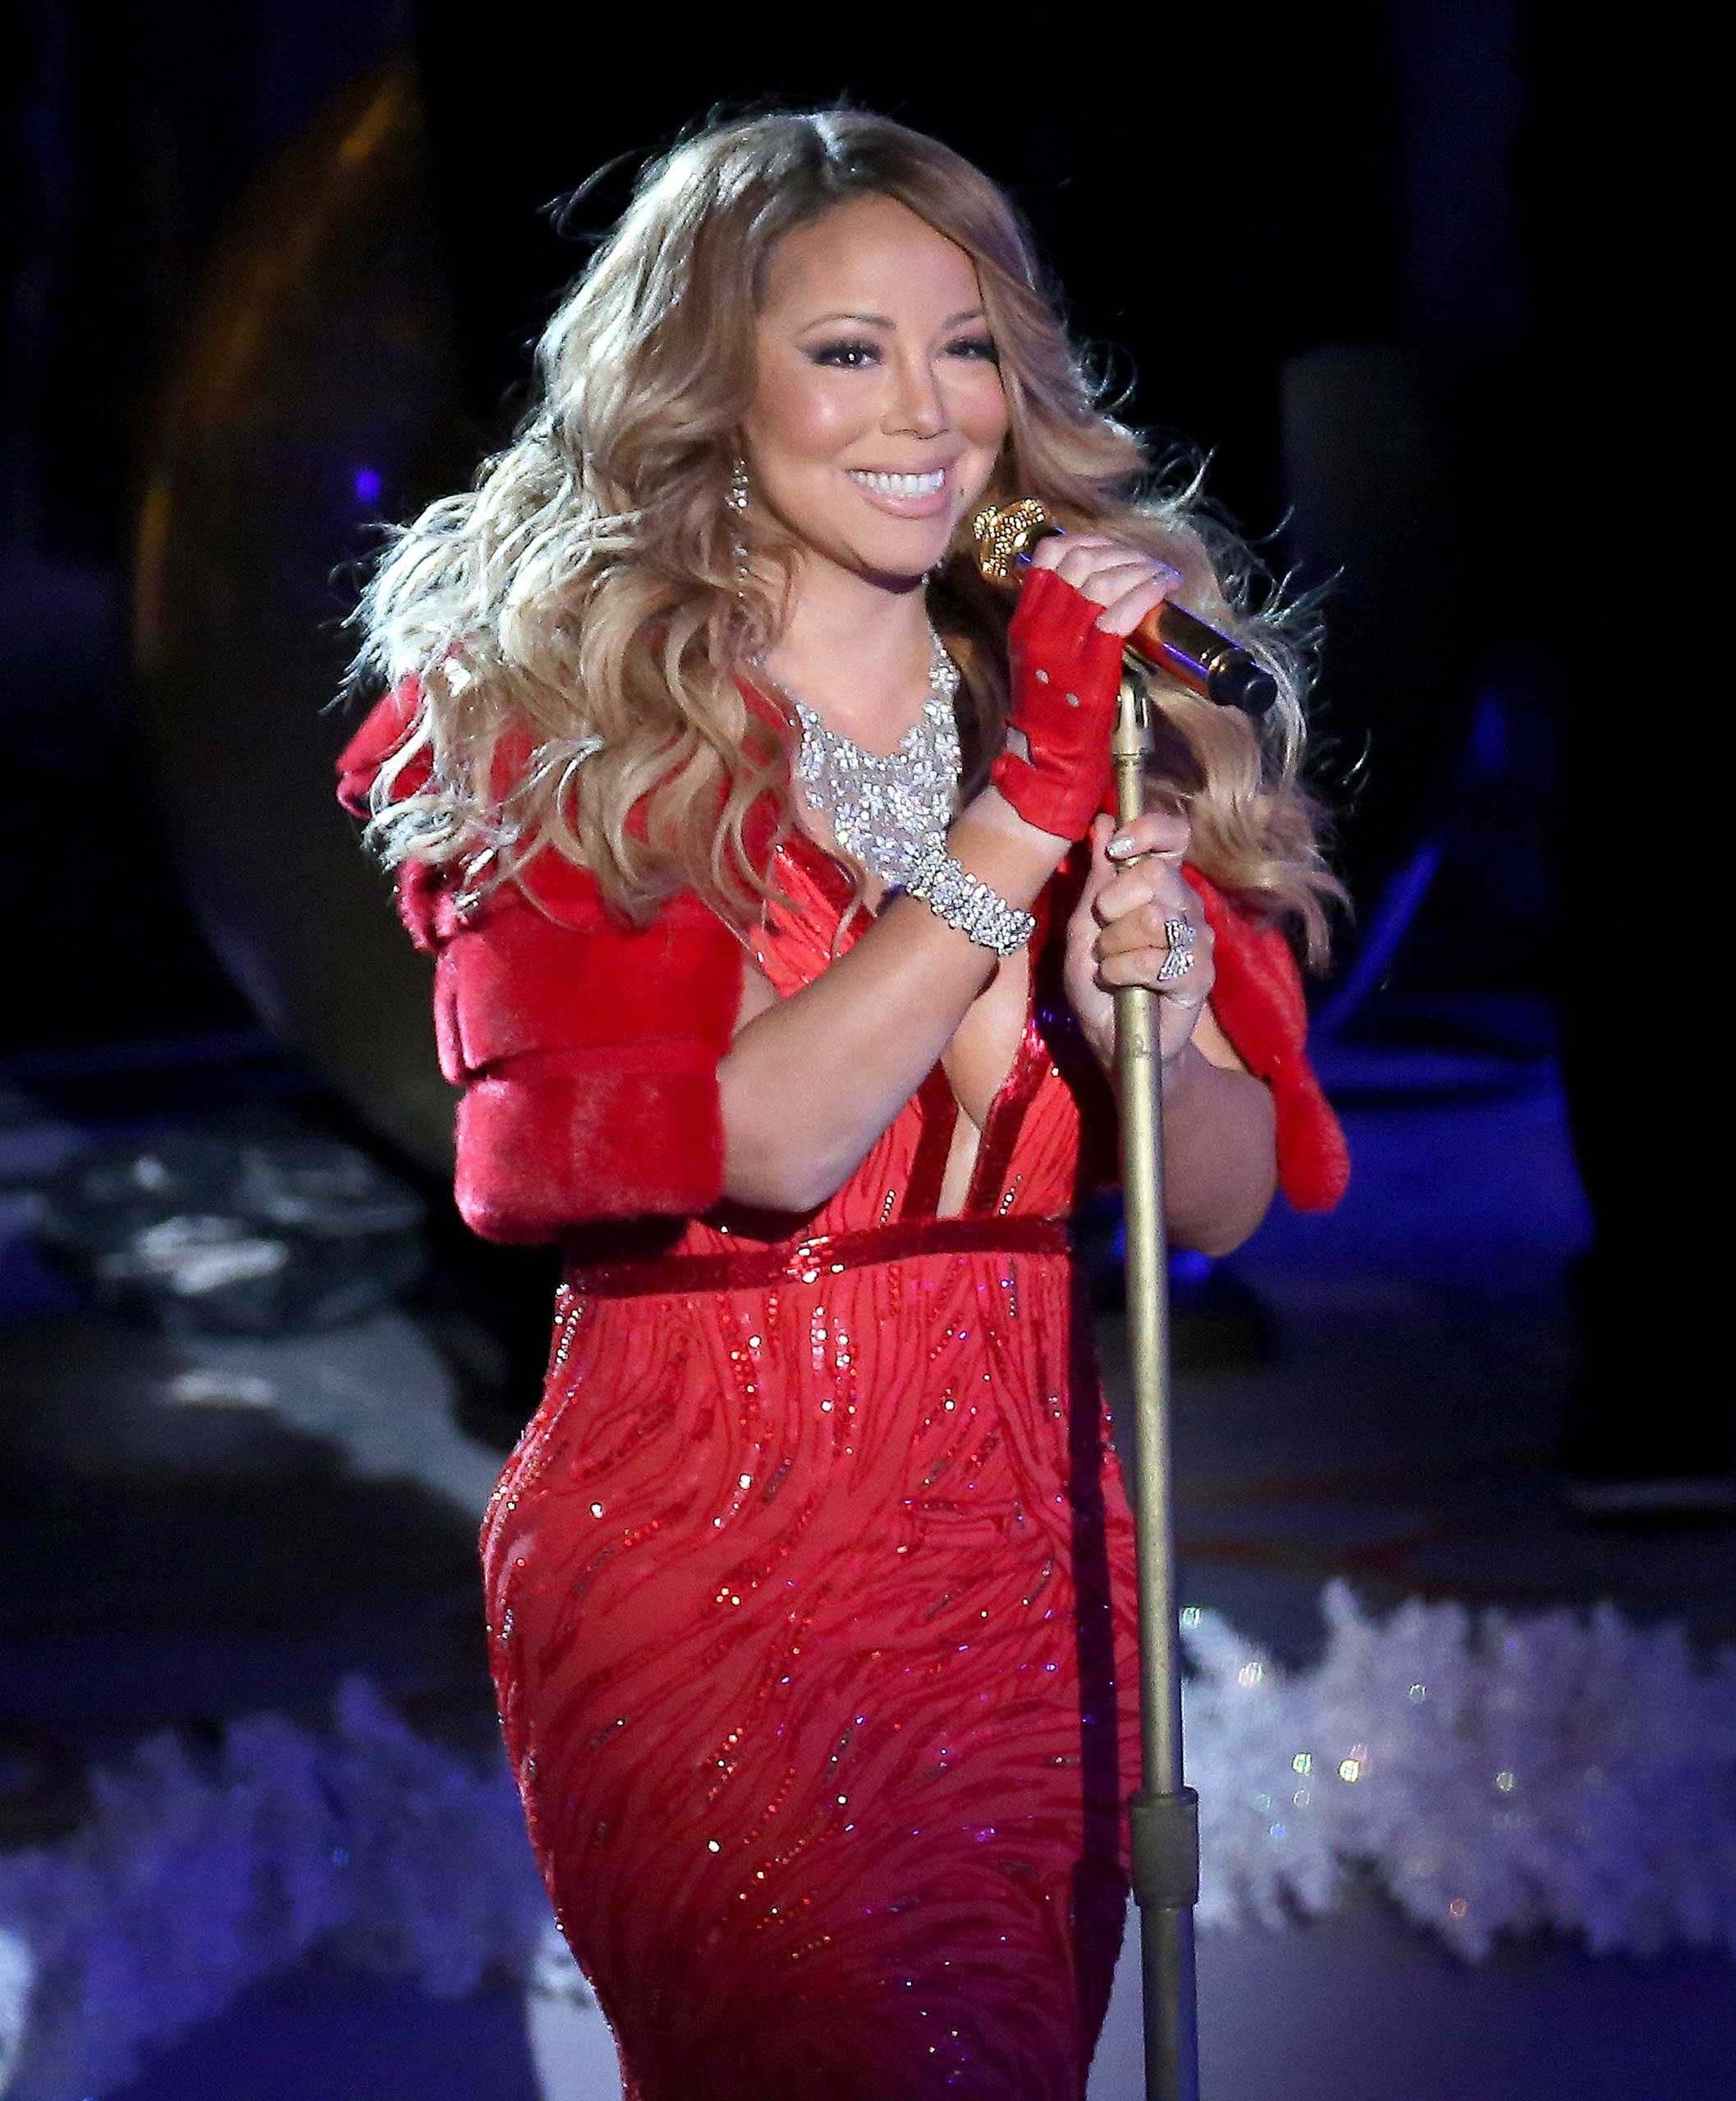 Singer Mariah Carey performs at the 82nd Annual Rockefeller Center Christmas Tree Lighting in New York City on Dece. 3, 2014.